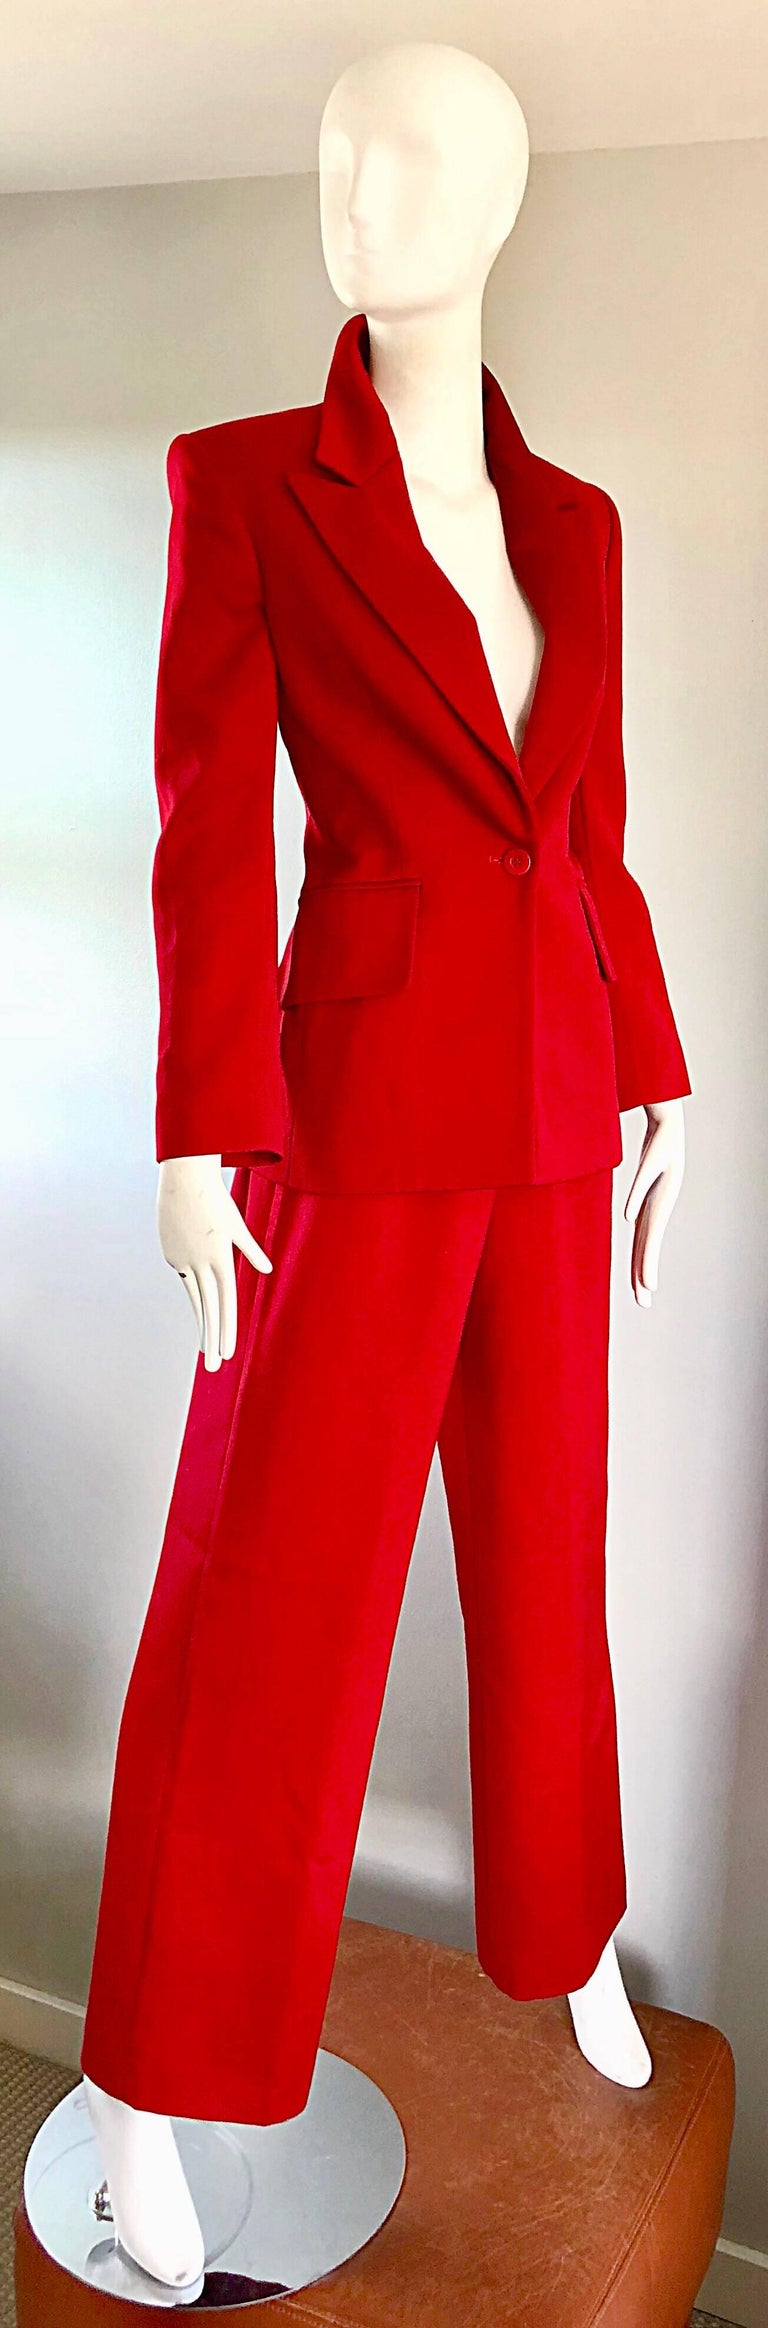 Isaac Mizrahi Vintage 1990s Lipstick Red Wide Leg Wool Le Smoking 90s Pants Suit 7